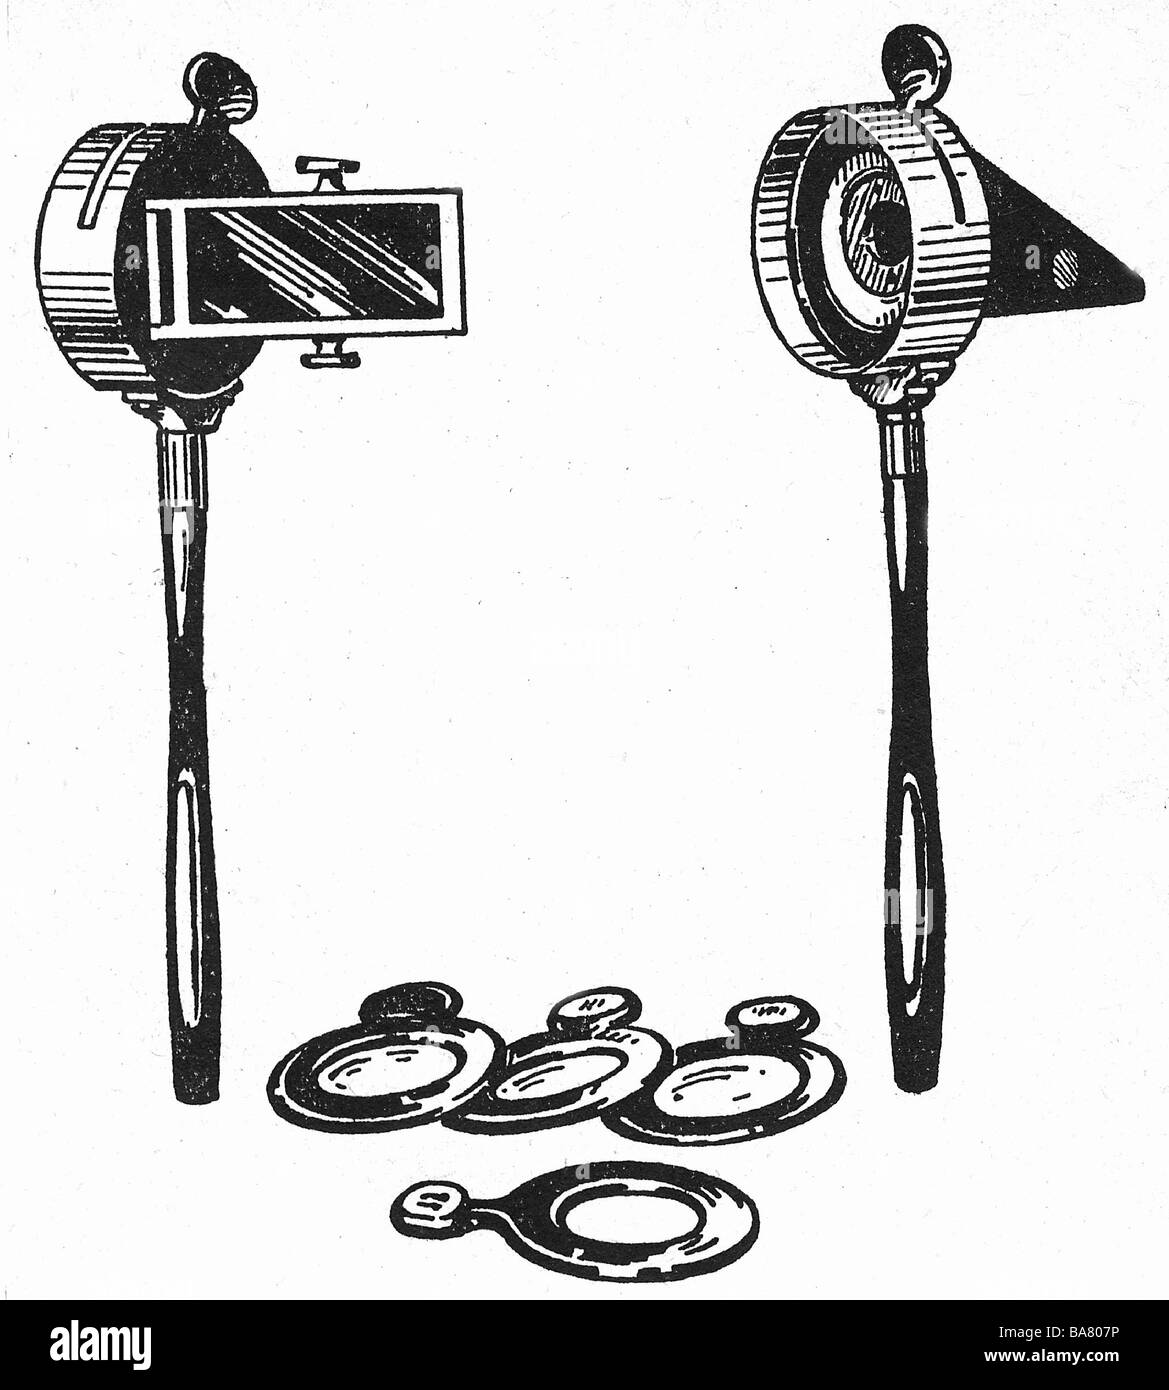 Helmholtz, Hermann von, 31.8.1821 - 8.9.1894, German scientist (medic and natural scientist), two eye mirrors with - Stock Image